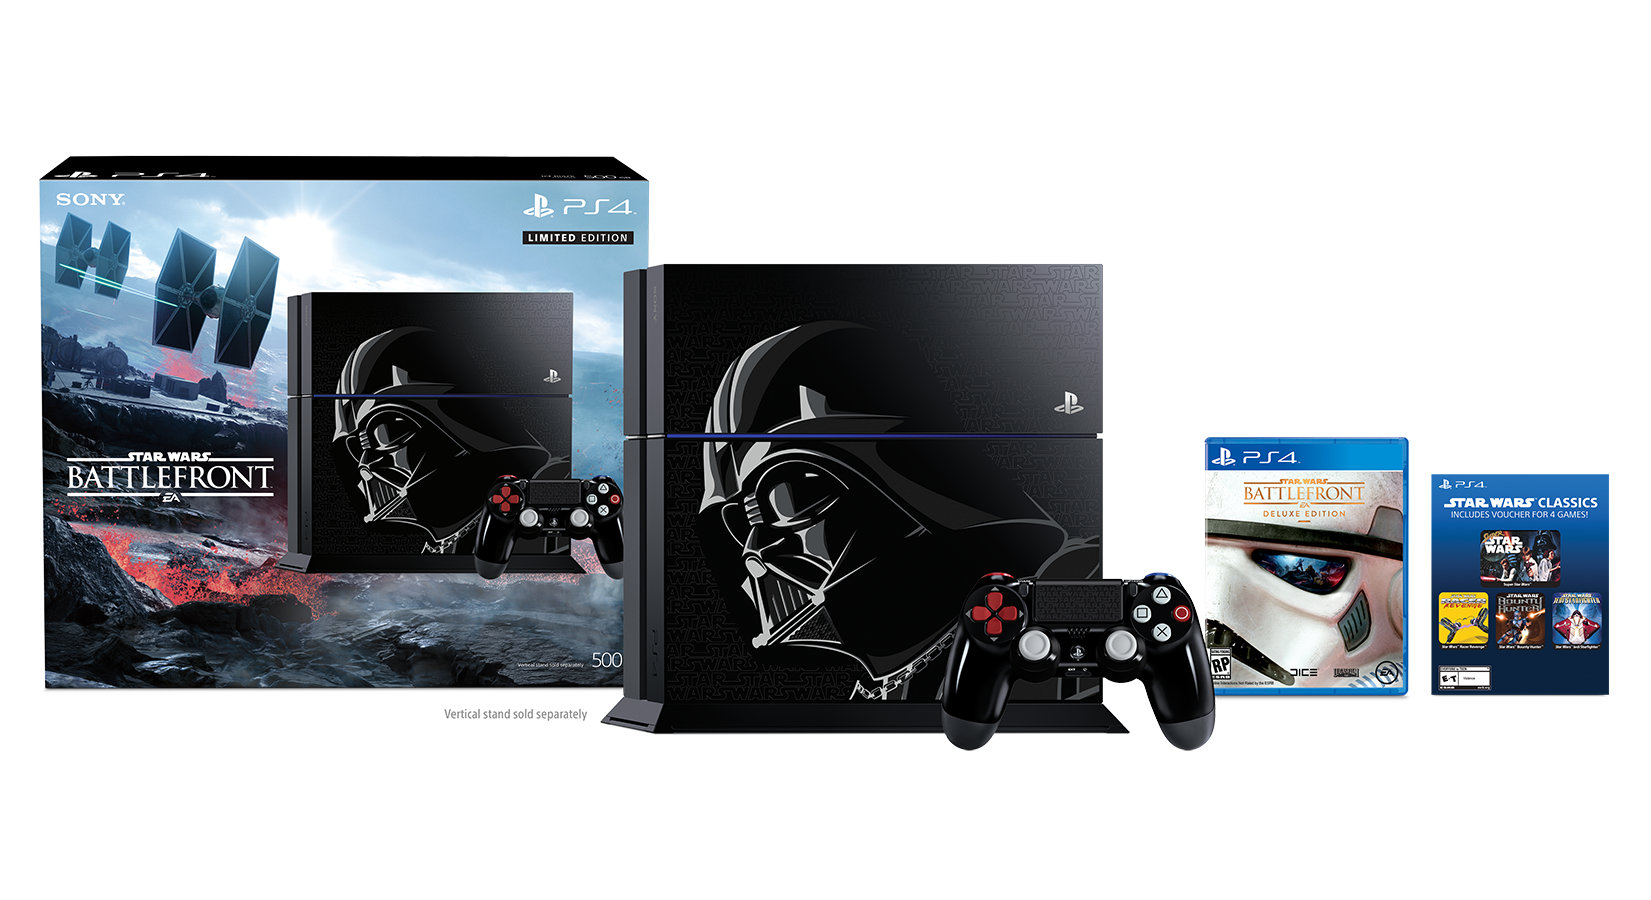 PlayStation 4 Drops to $349.99, Sony Drops Holiday 2015 Gauntlet | USgamer